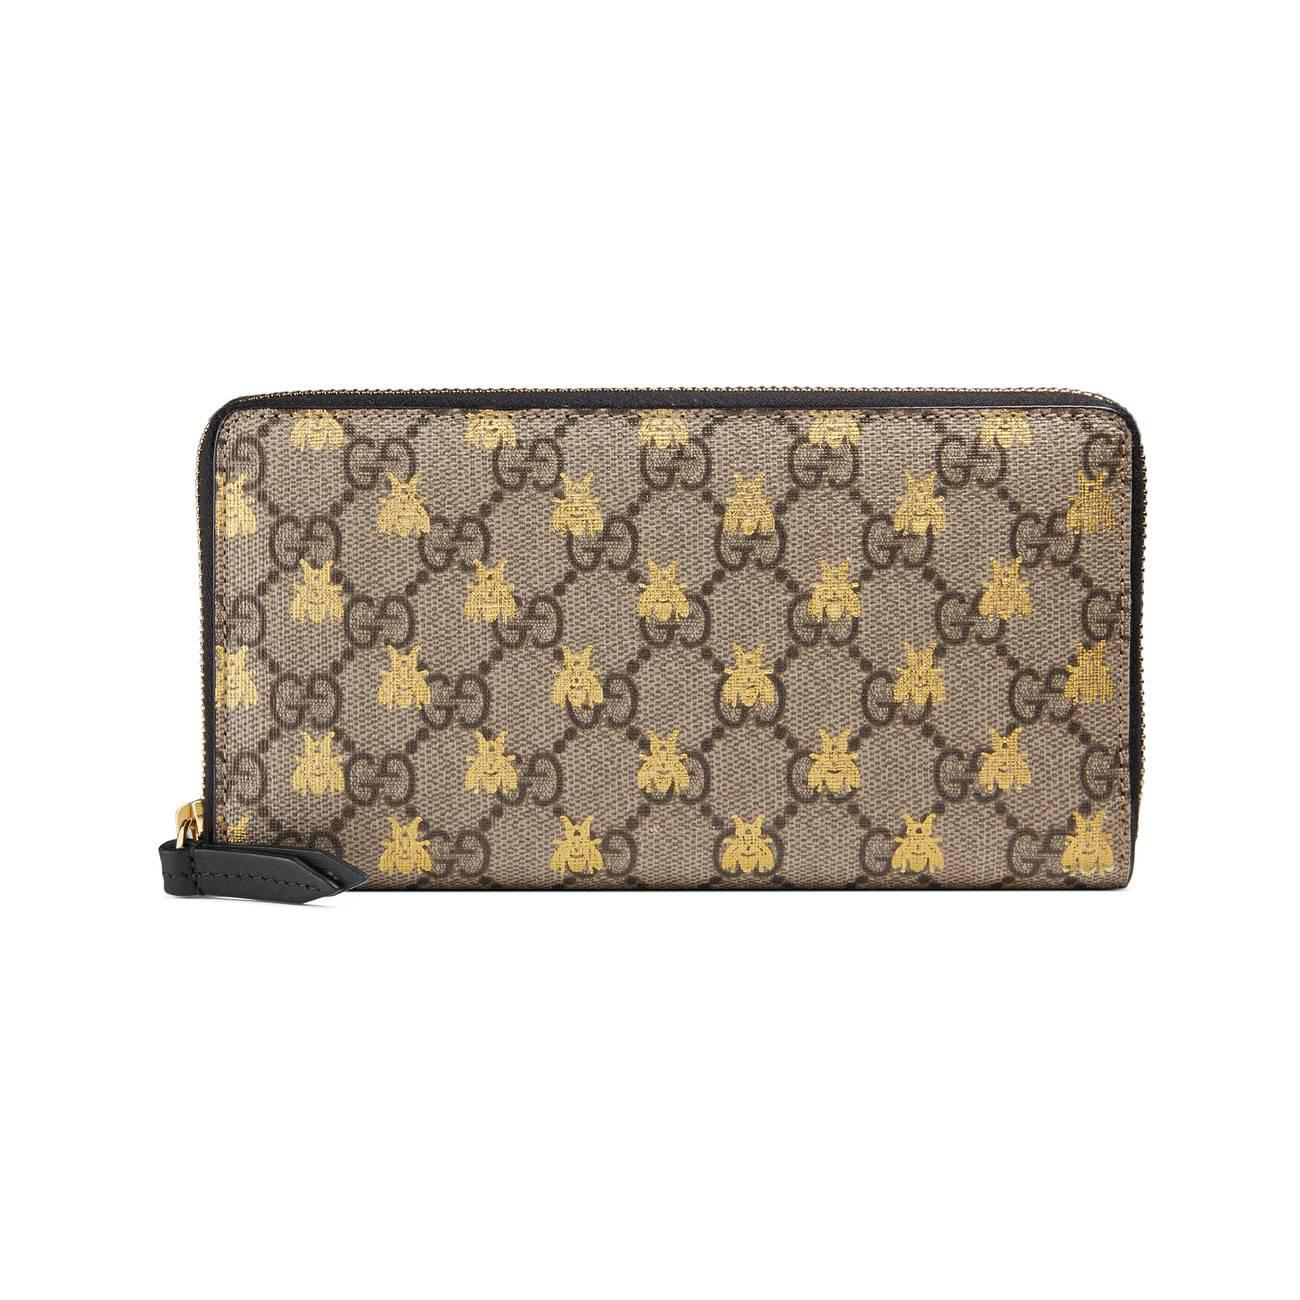 25b2353248de Lyst - Gucci GG Supreme Bees Zip Around Wallet in Black